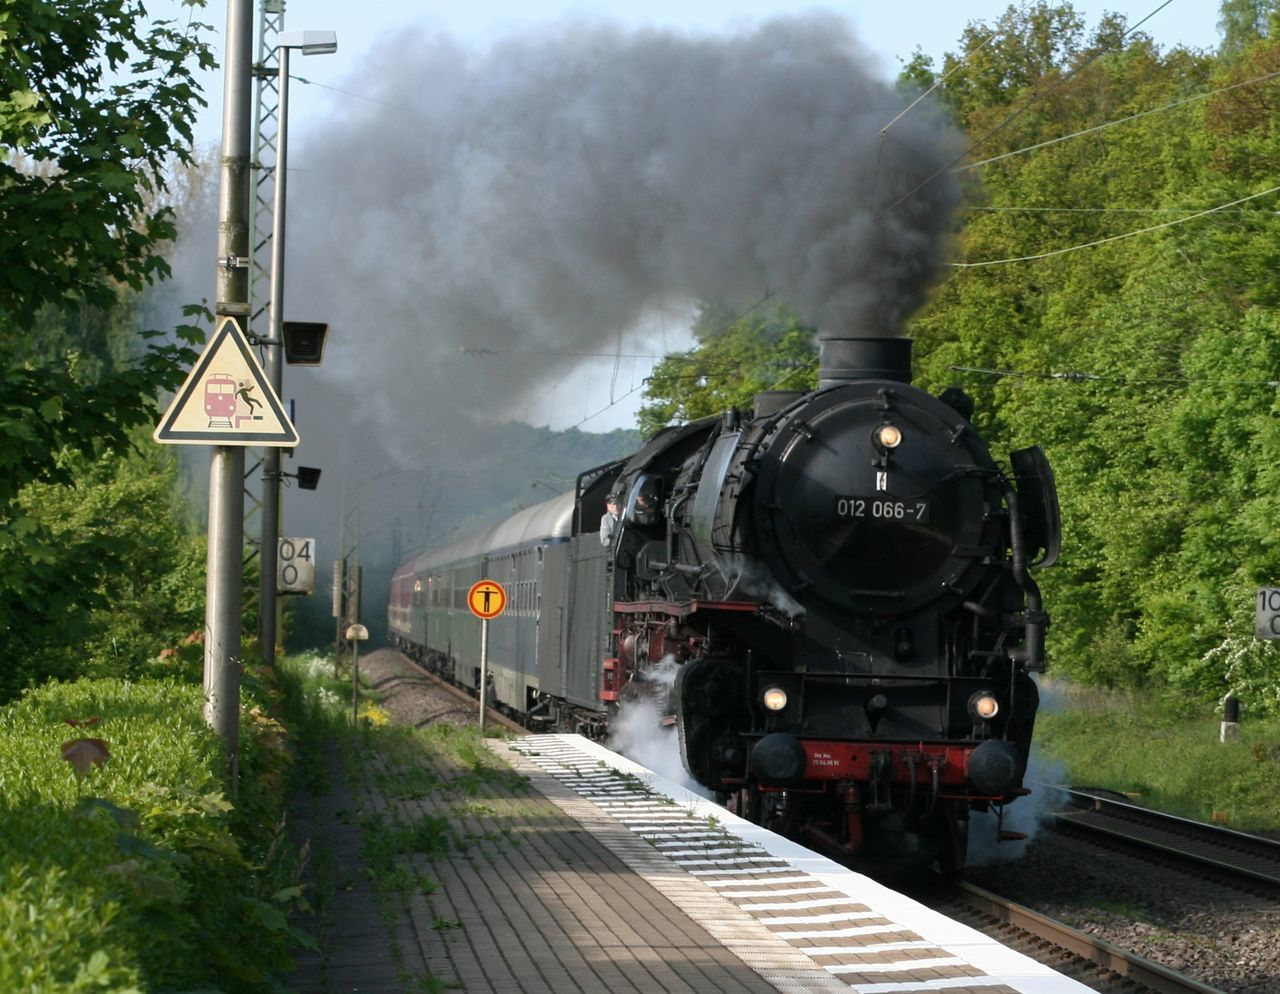 train - vehicle, steam train, transportation, rail transportation, smoke - physical structure, locomotive, railroad track, mode of transport, public transportation, outdoors, day, steam, old-fashioned, no people, tree, sky